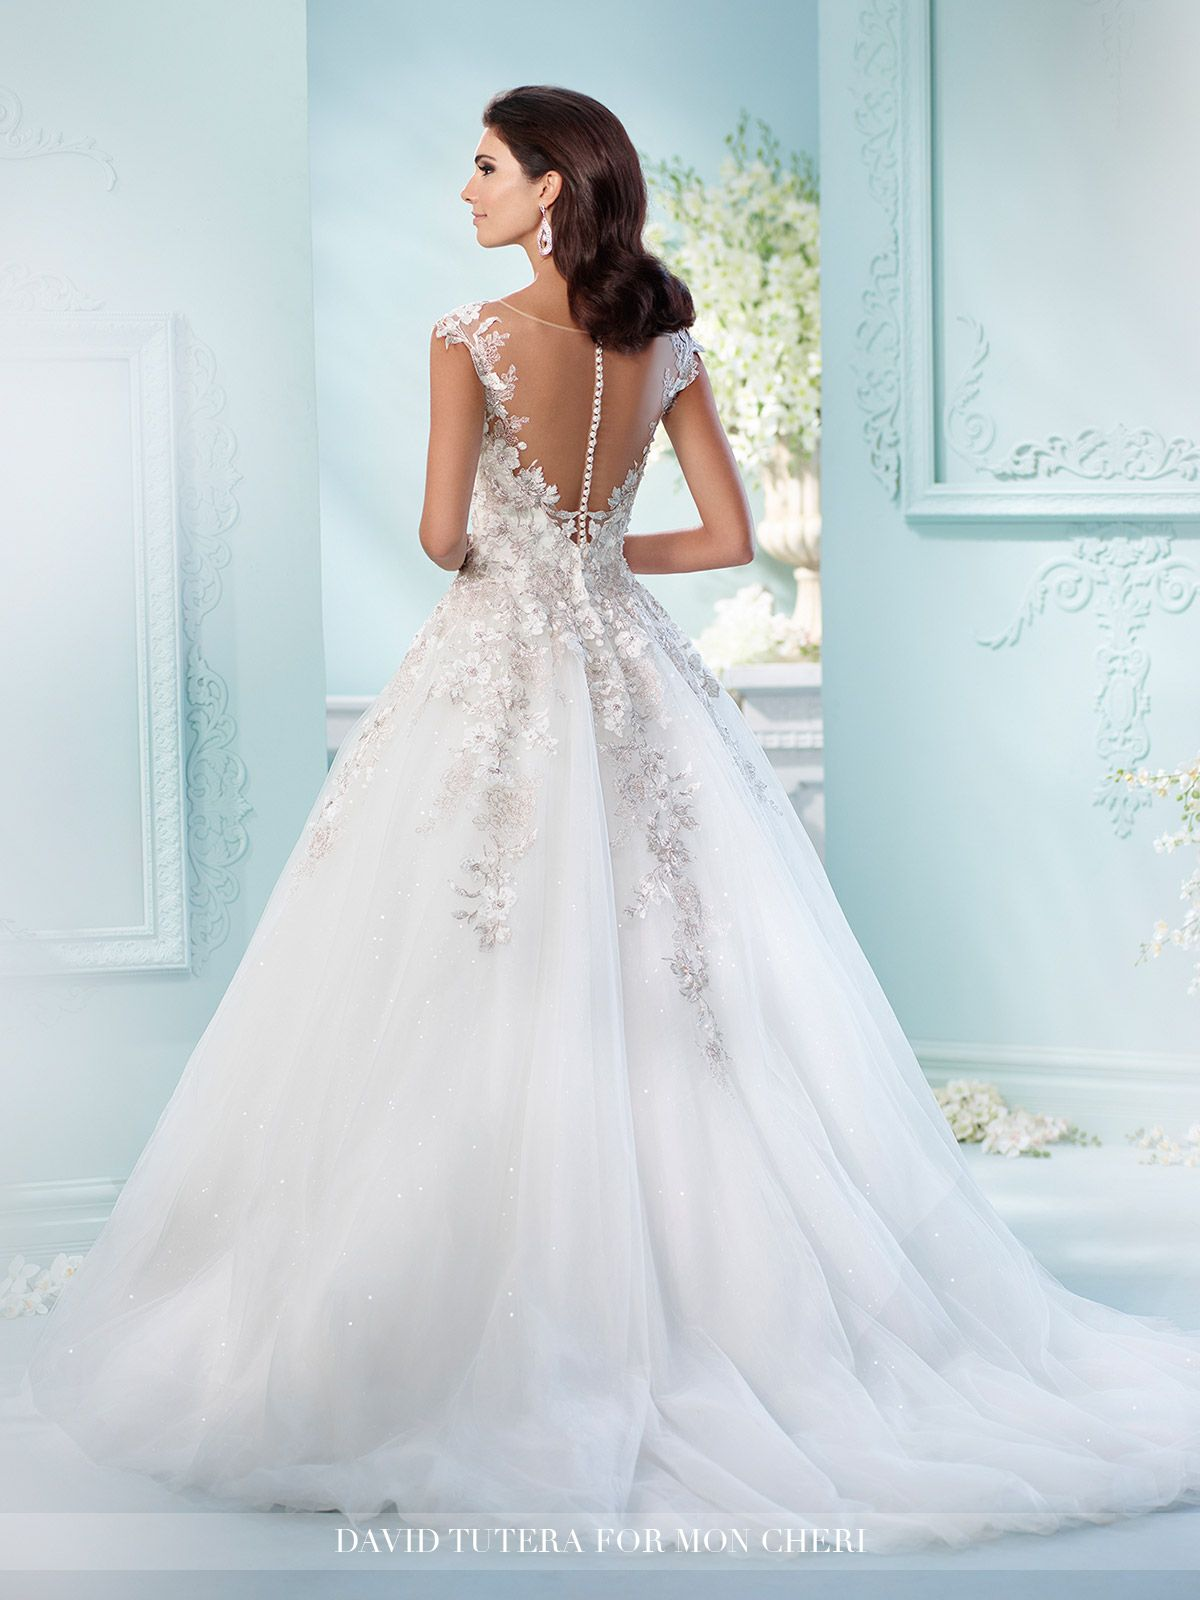 Sequin tulle embroidered lace ball gown wedding dress 216238 jay david tutera for mon cheri 216238 jay tulle sequin tulle organza and hand beaded metallic embroidered schiffli lace appliqus over satin ball gown junglespirit Images